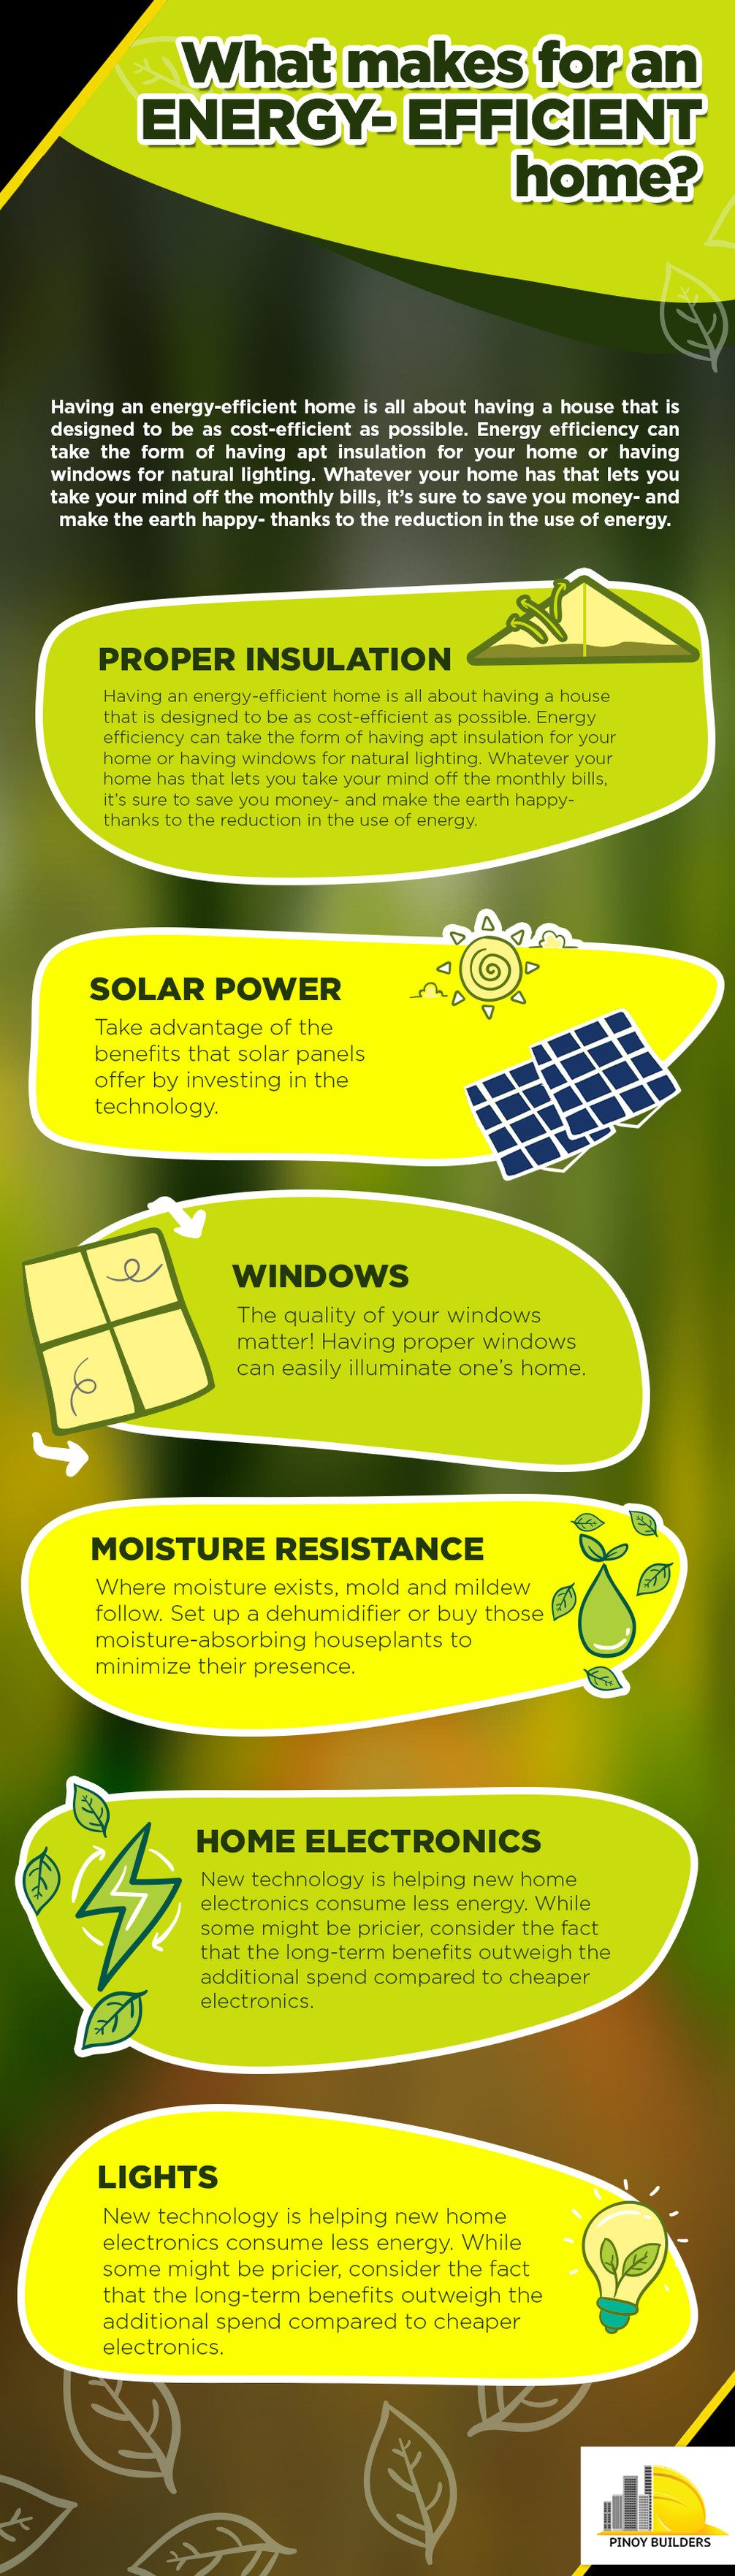 Infographics -What makes for an energy-efficient home (1).jpg